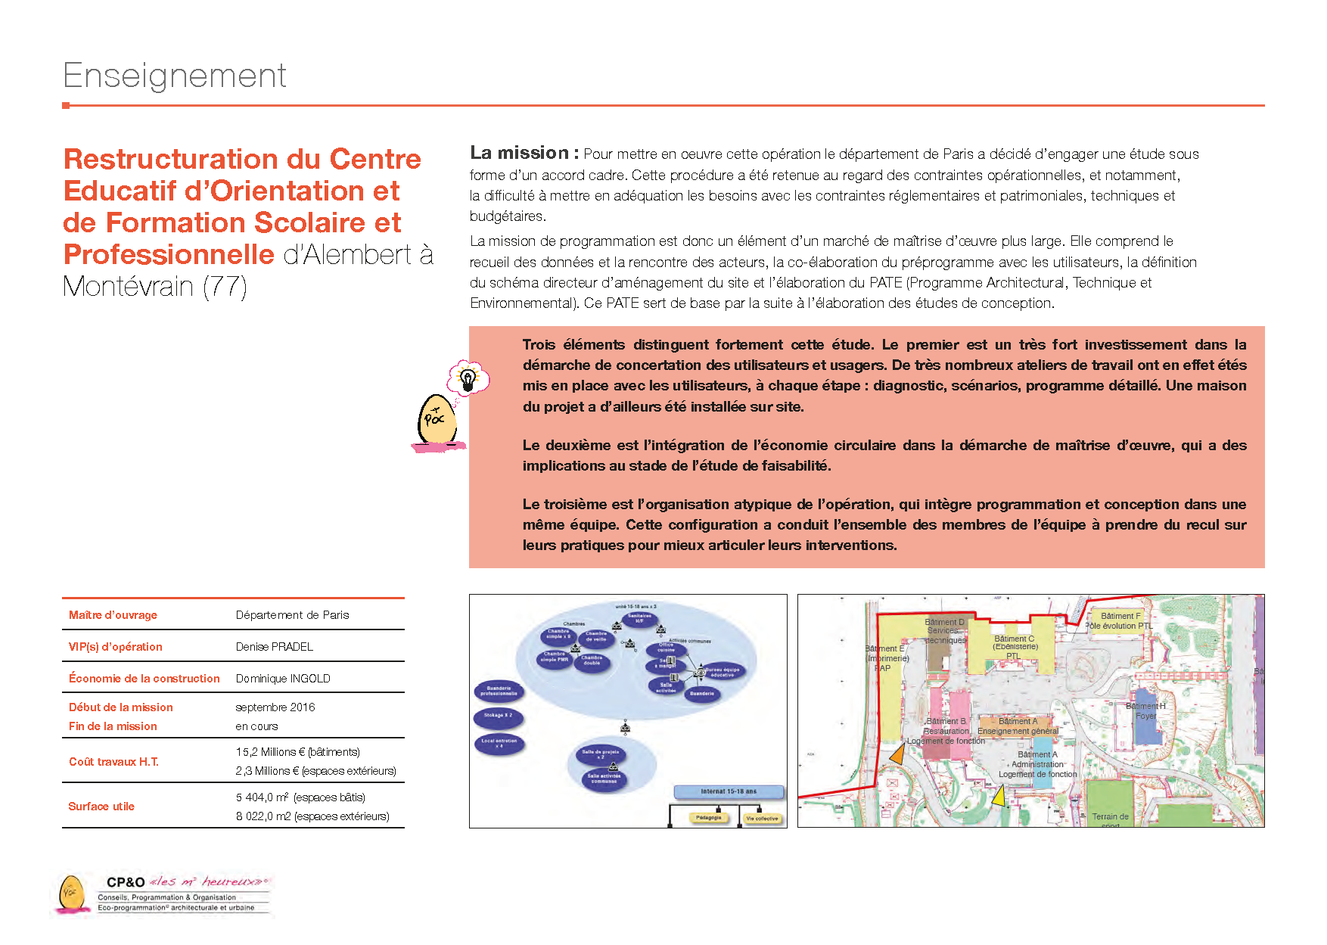 enseignement_Page_18.png